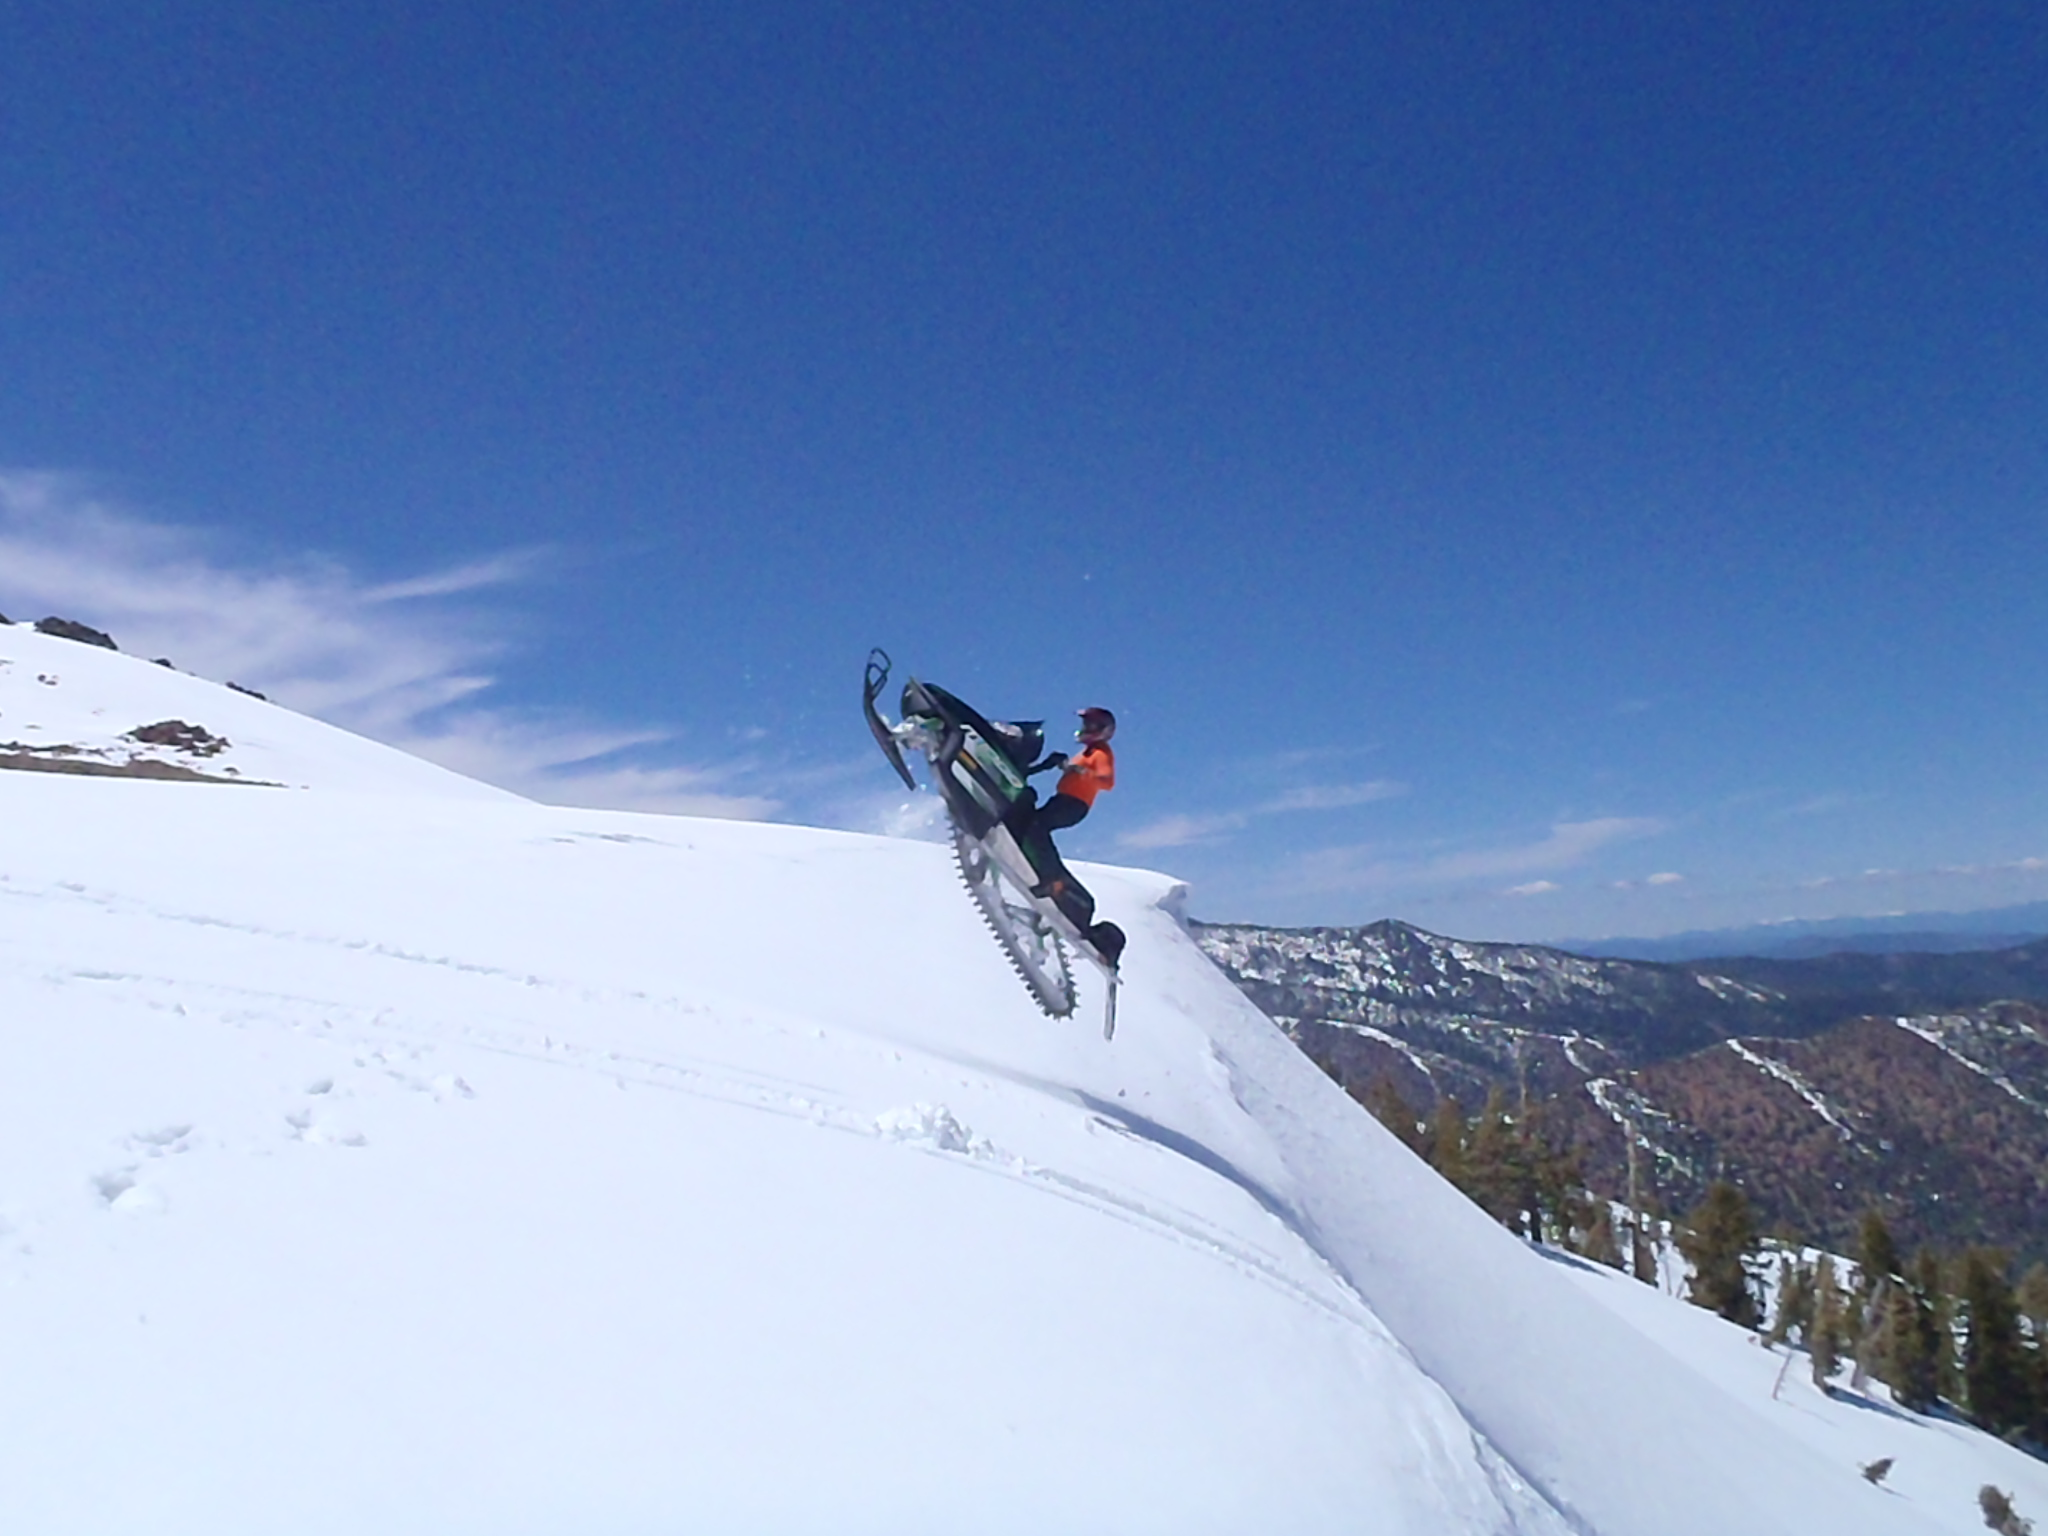 Steve, Chiropractor, Age 50,snowmobiling in Mt. Shasta, CA.